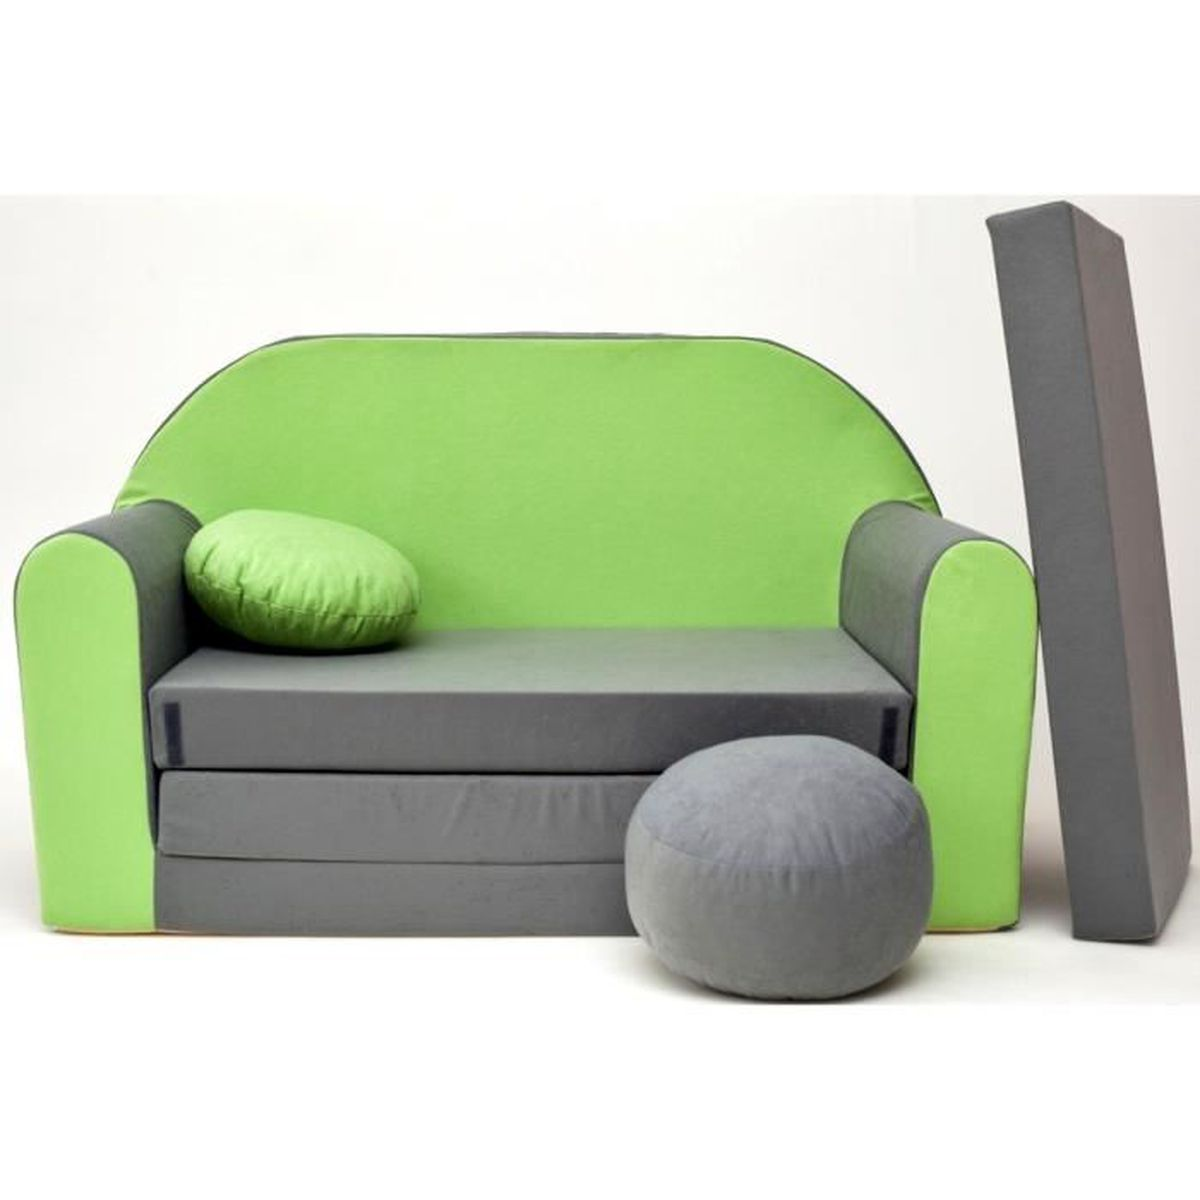 canape sofa enfant 2 places convertible gris vert achat vente fauteuil canap b b. Black Bedroom Furniture Sets. Home Design Ideas